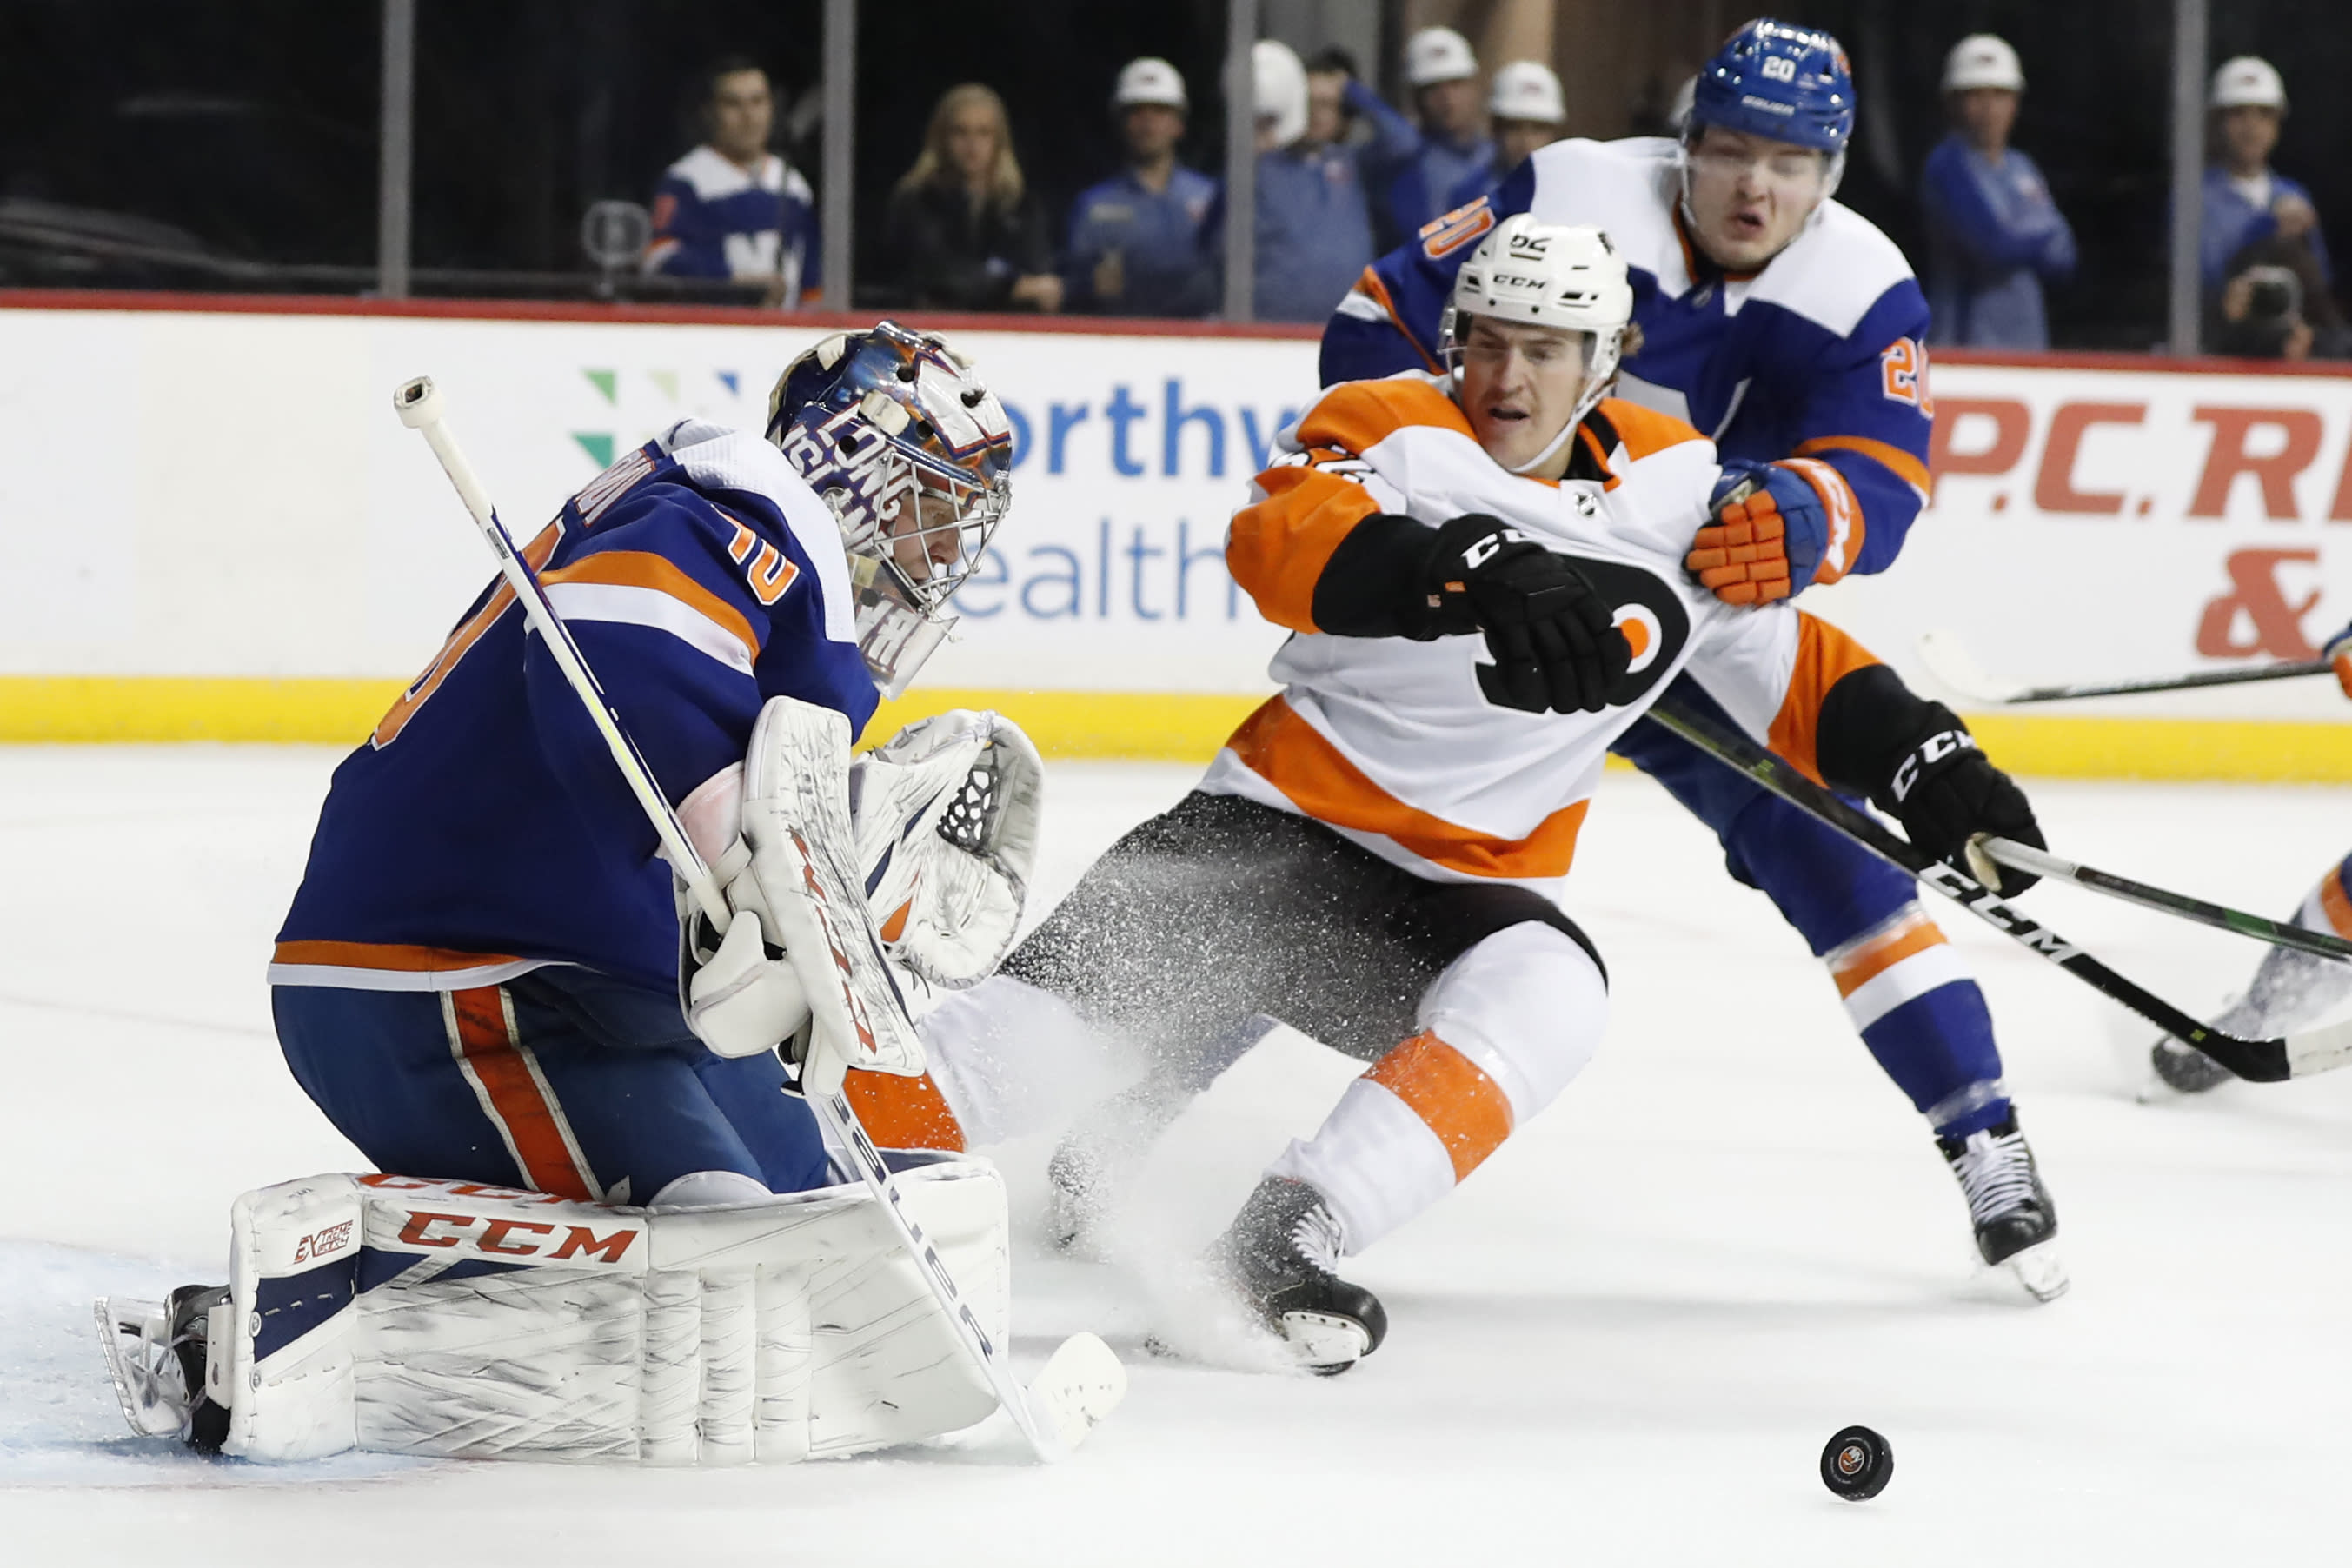 FILE - In This Feb. 11, 2020, file photo, New York Islanders goaltender Semyon Varlamov (40) deflects the puck as Islanders left wing Kieffer Bellows (20) keeps Philadelphia Flyers right wing Nicolas Aube-Kubel (62) away during the first period of an NHL hockey game in New York. The NHL ditched divisional playoffs to go back to the old-school format for its summer postseason and still ended up with all division rivals facing off in the second round. It's the Flyers against Islanders in the Metropolitan series. (AP Photo/Kathy Willens, File)